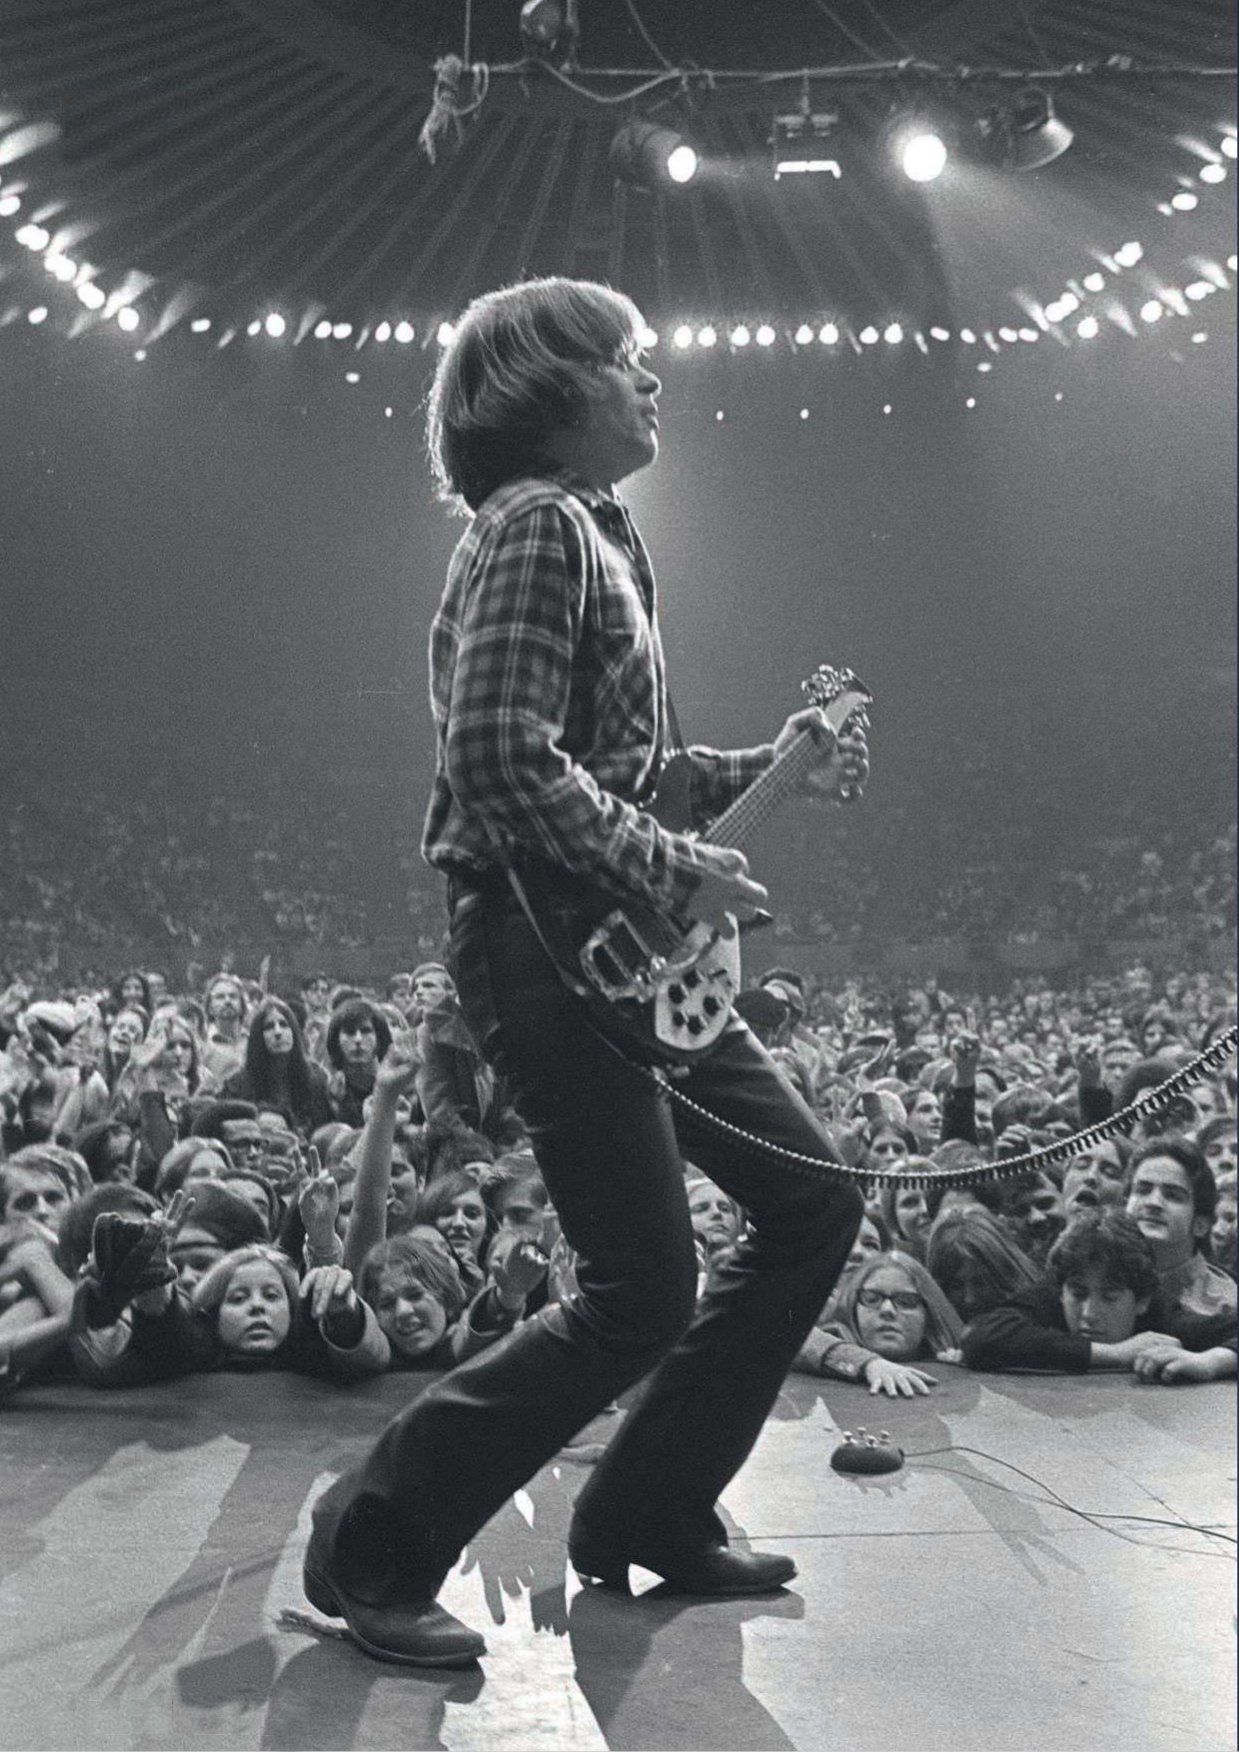 120 John Fogerty Ccr Ideas Creedence Clearwater Revival Clearwater Revival Rock And Roll